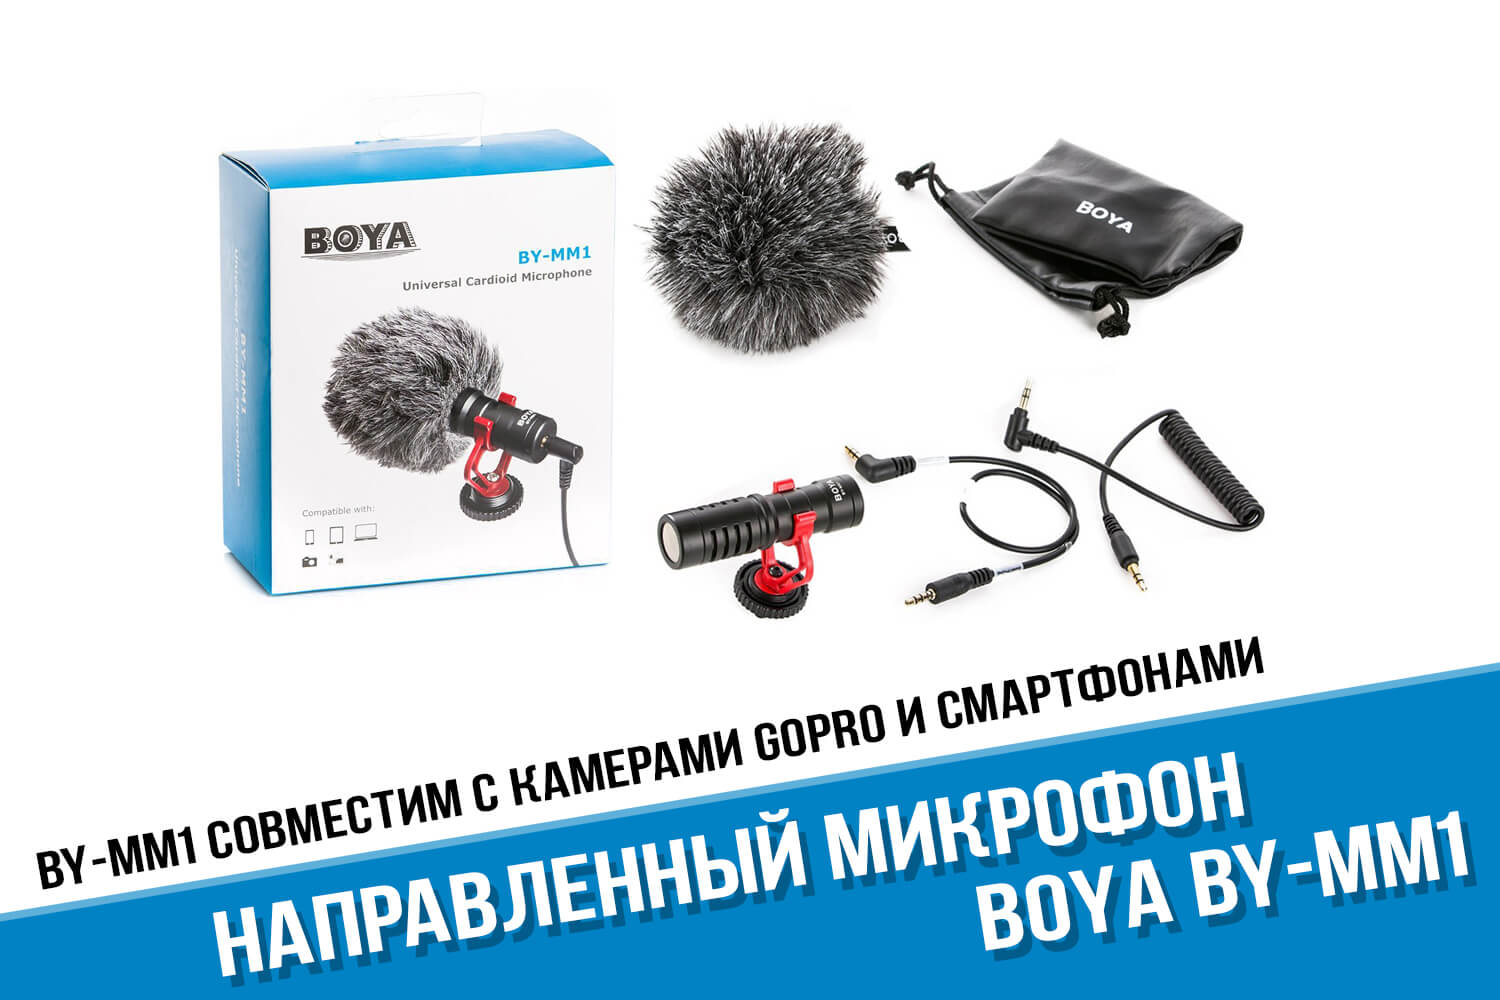 Микрофон Boya BY-MM1